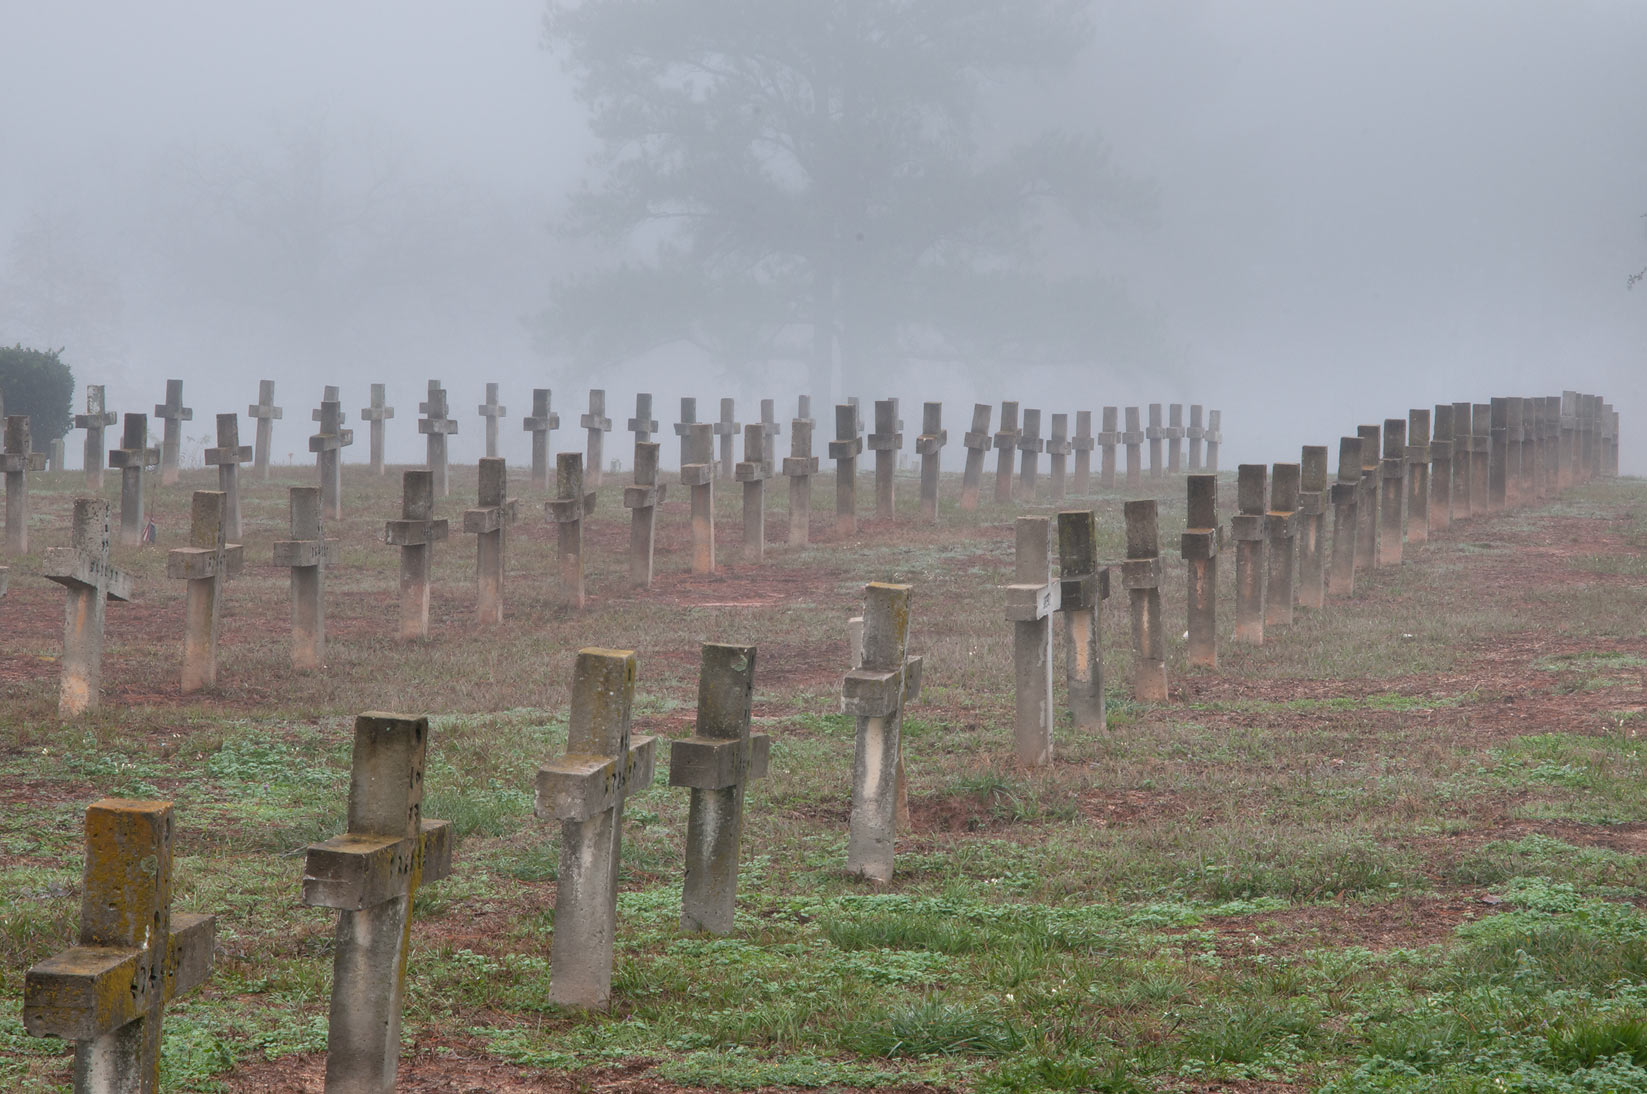 Aligned crosses of TDCJ Captain Joe Byrd...Cemetery in fog. Huntsville, Texas